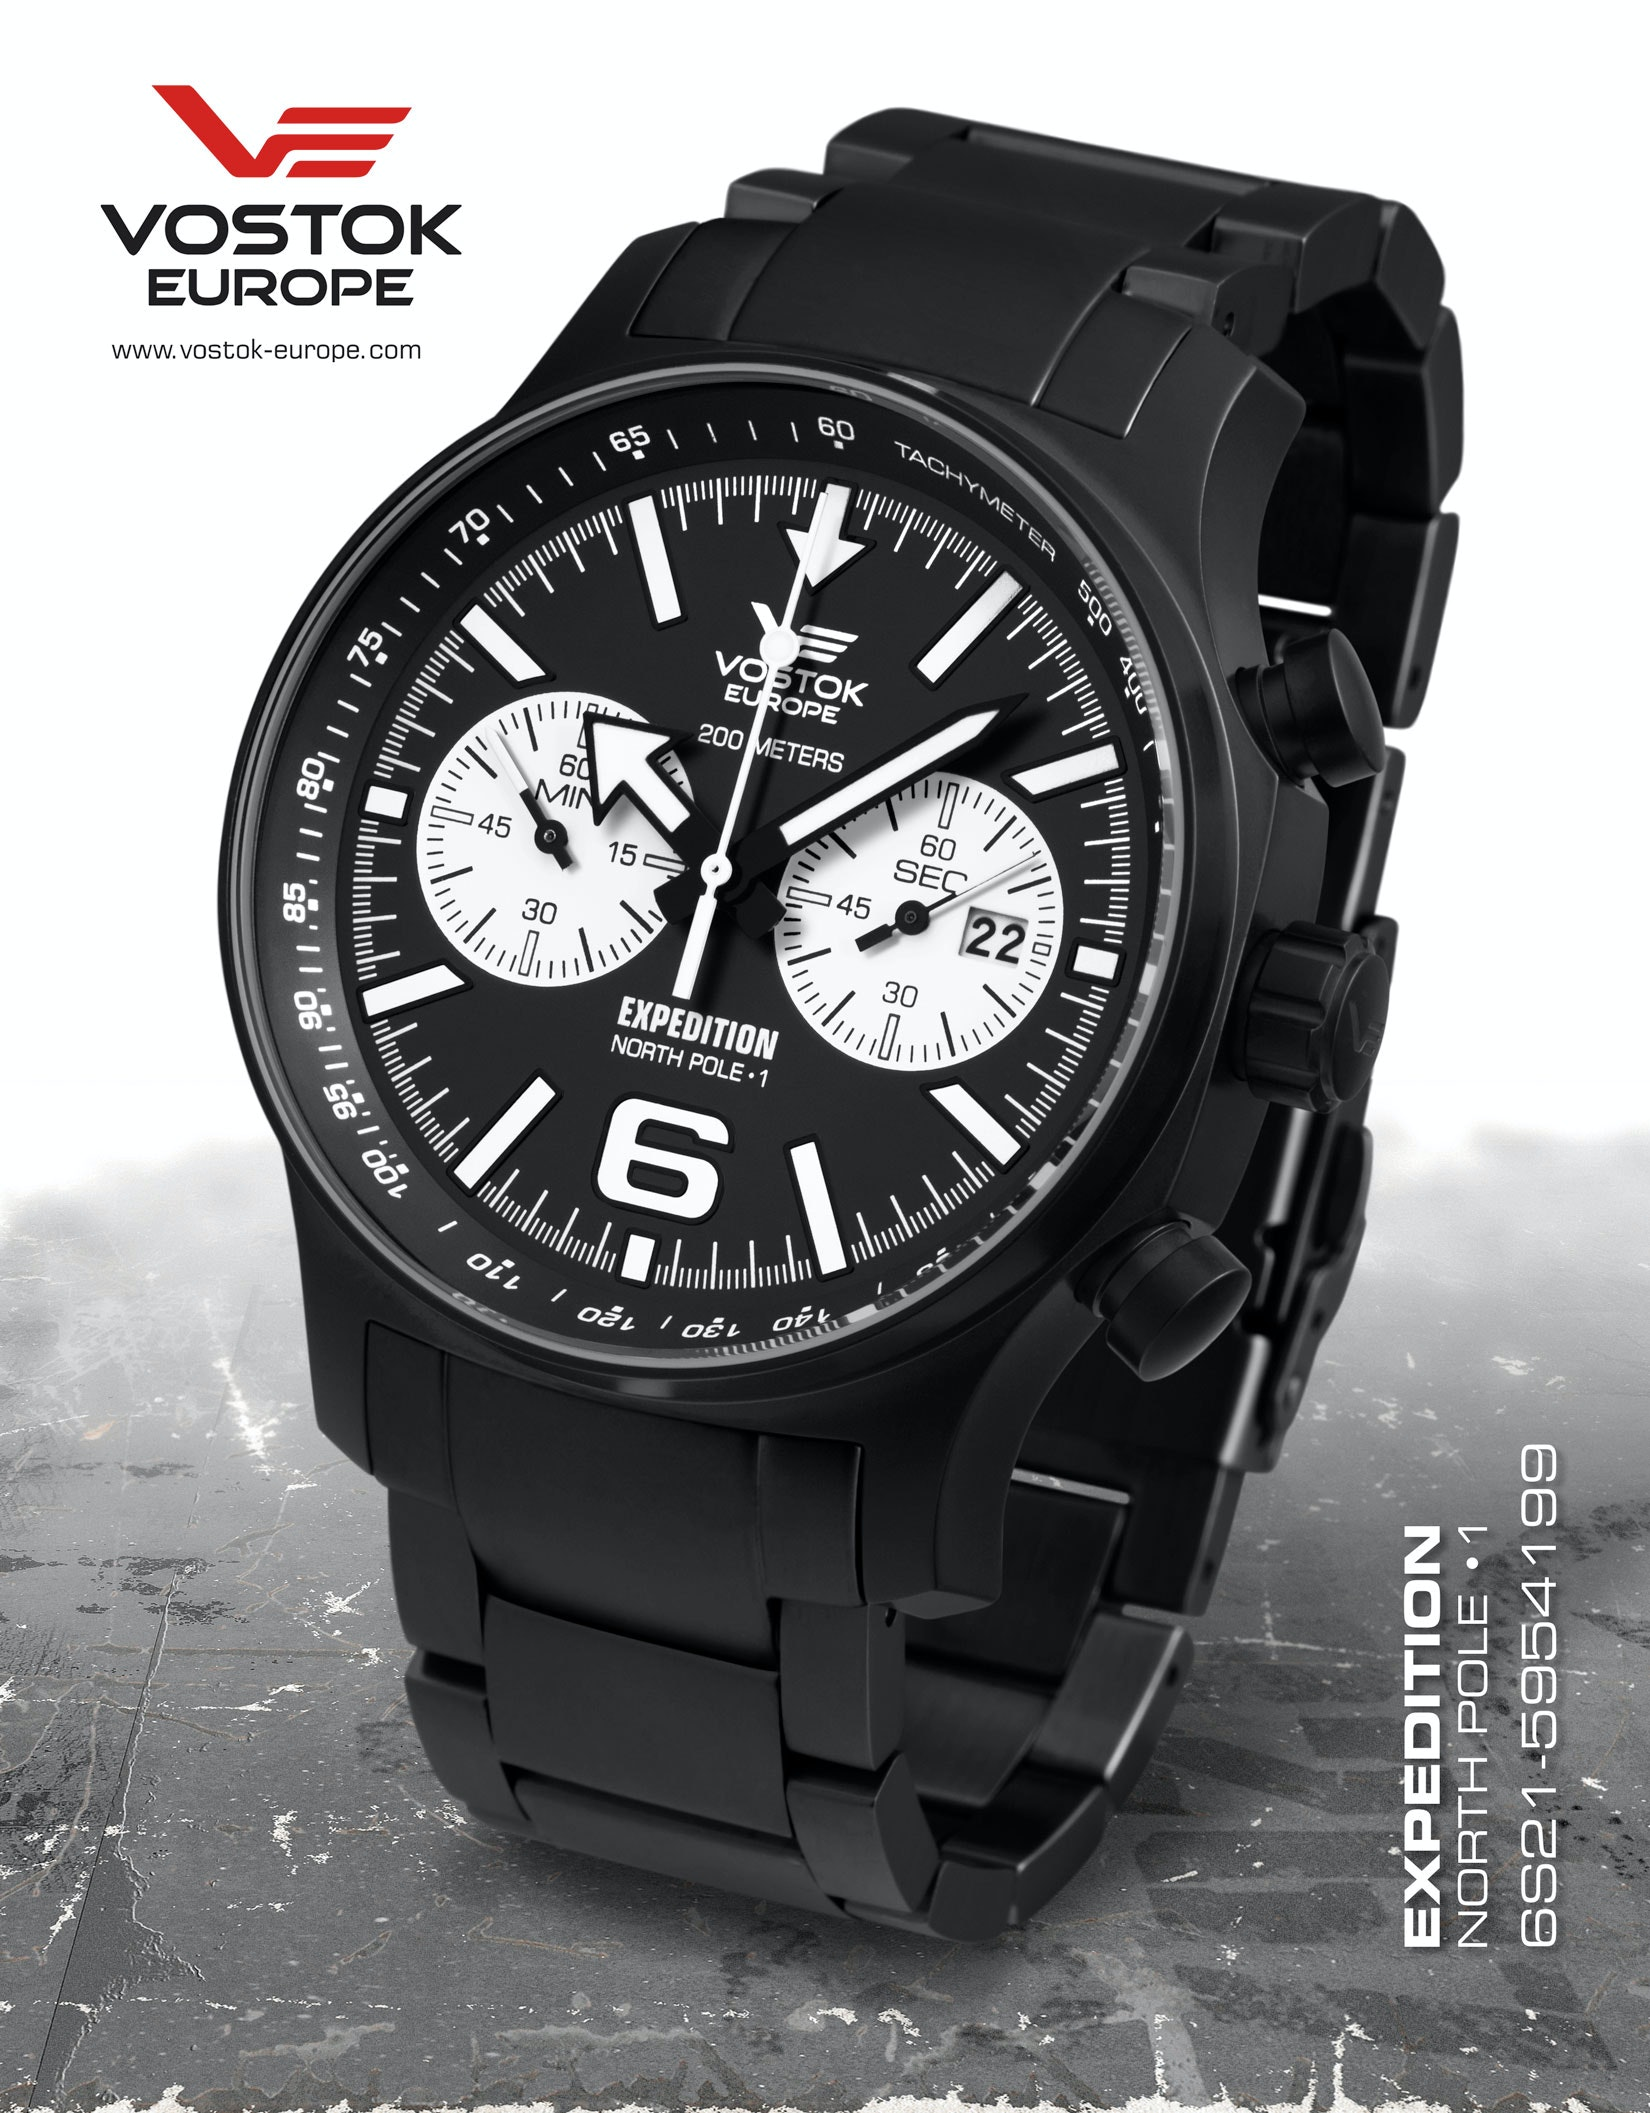 Vostok Europe:  EXPEDITION NORTH POLE 1